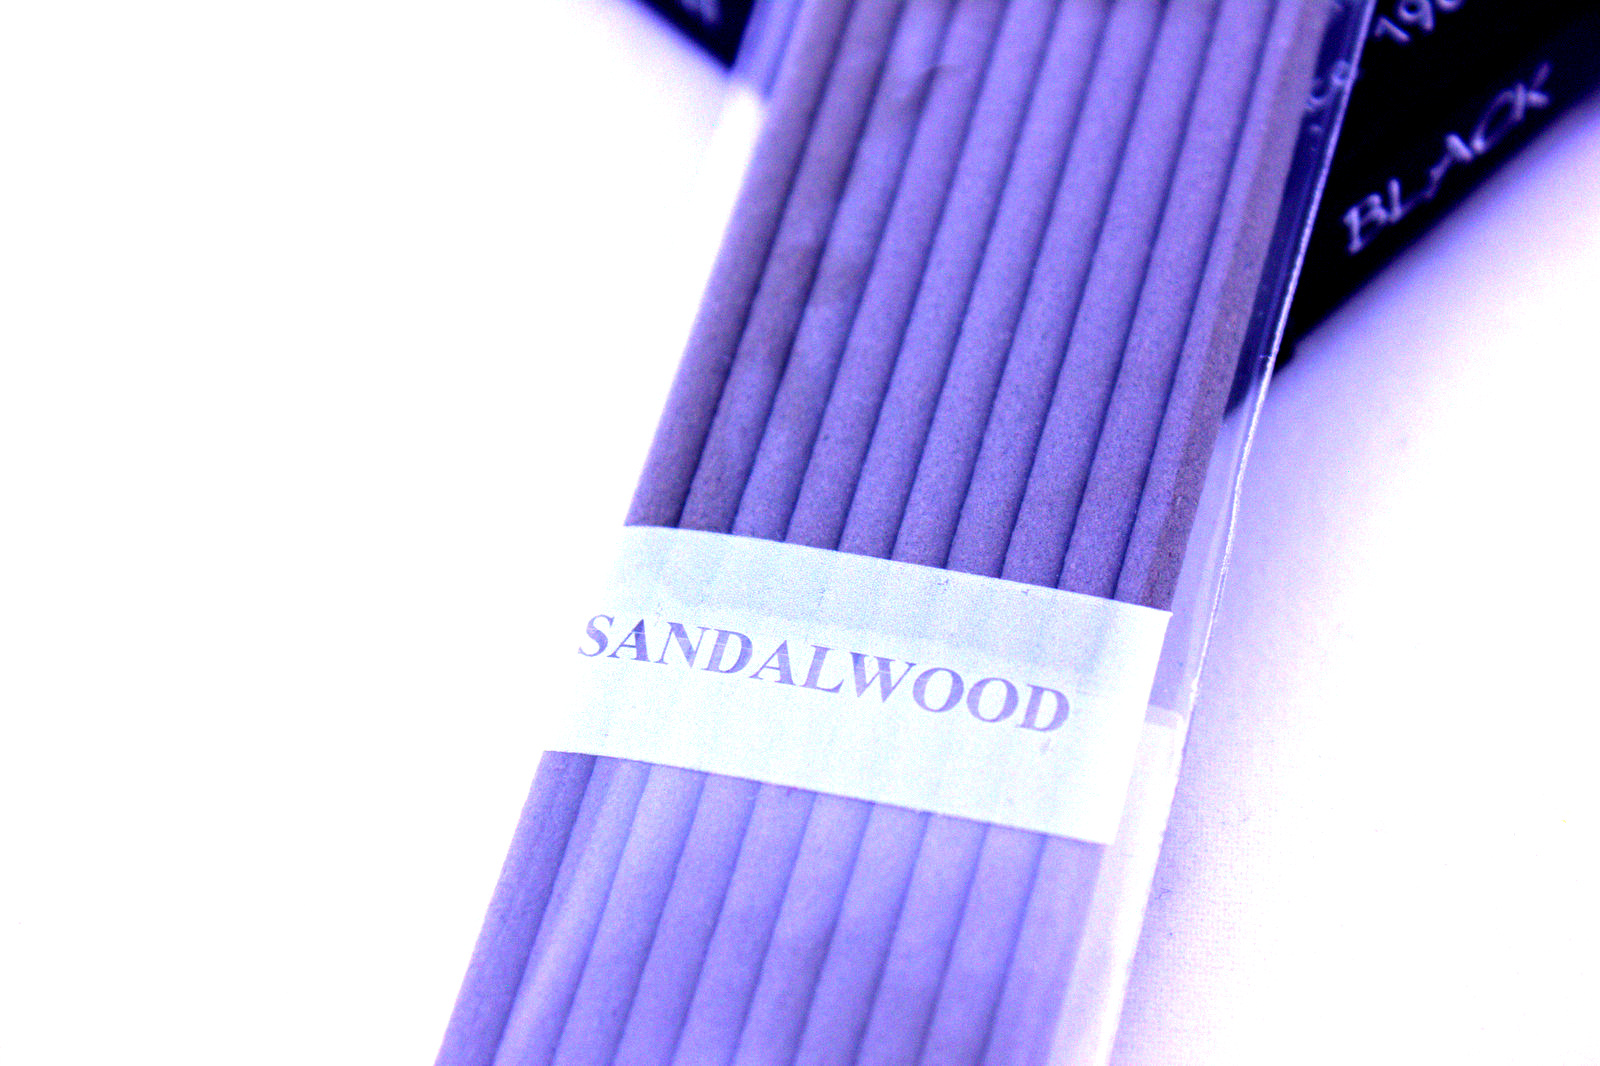 5a1sandalwood.jpg_product